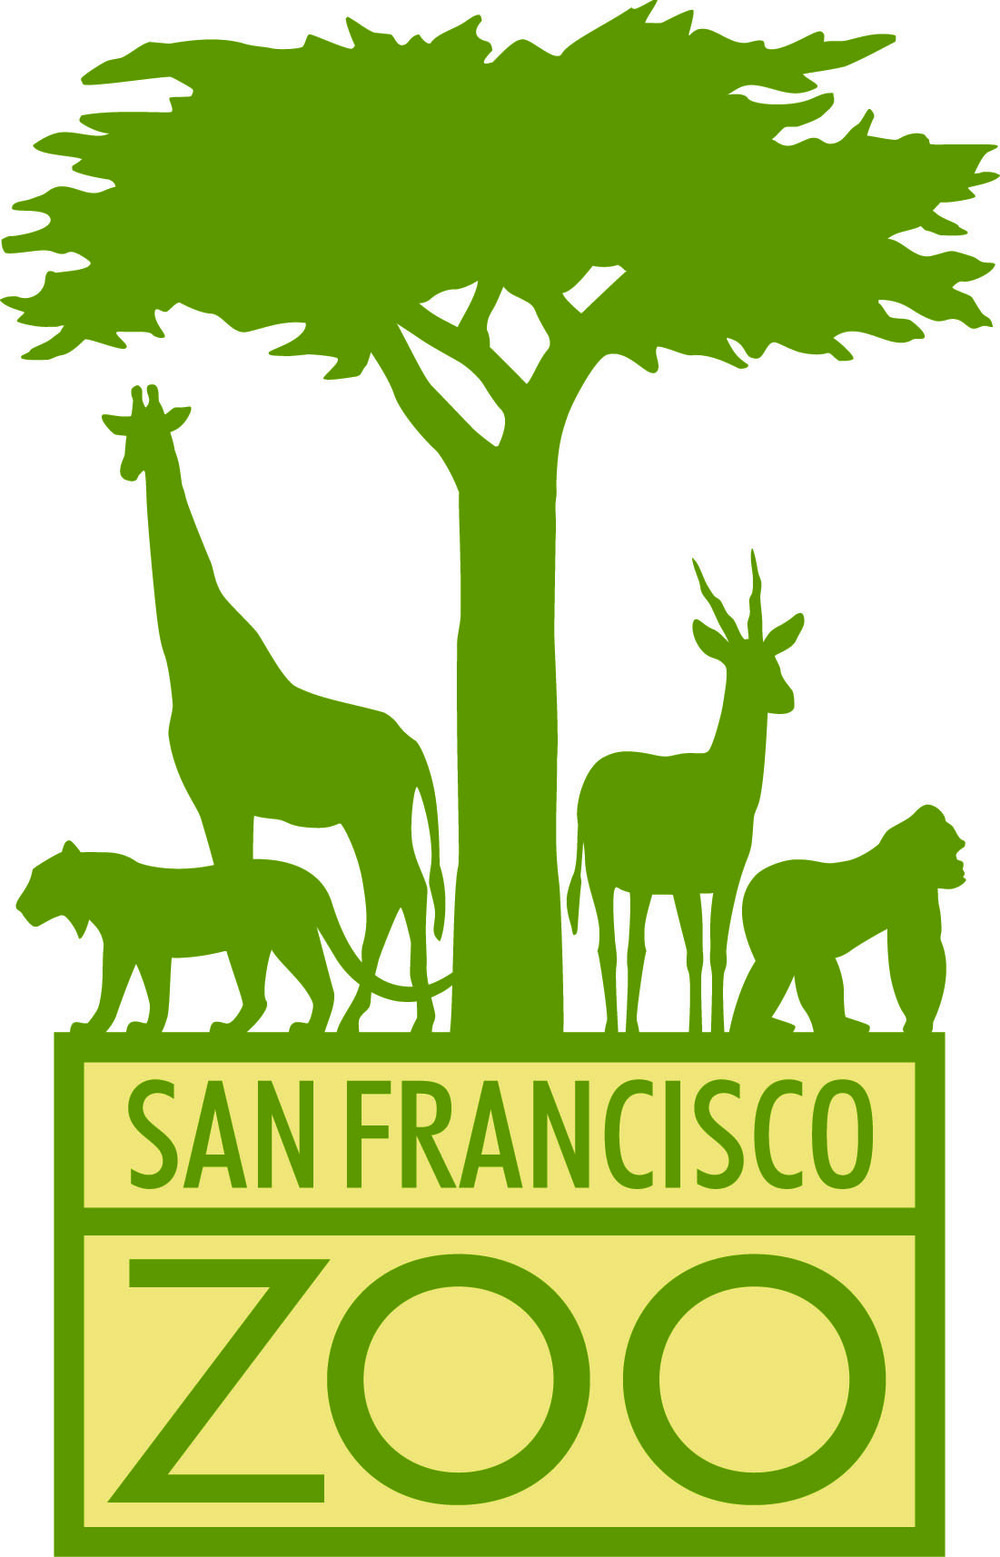 San Francisco Zoo logo.jpg